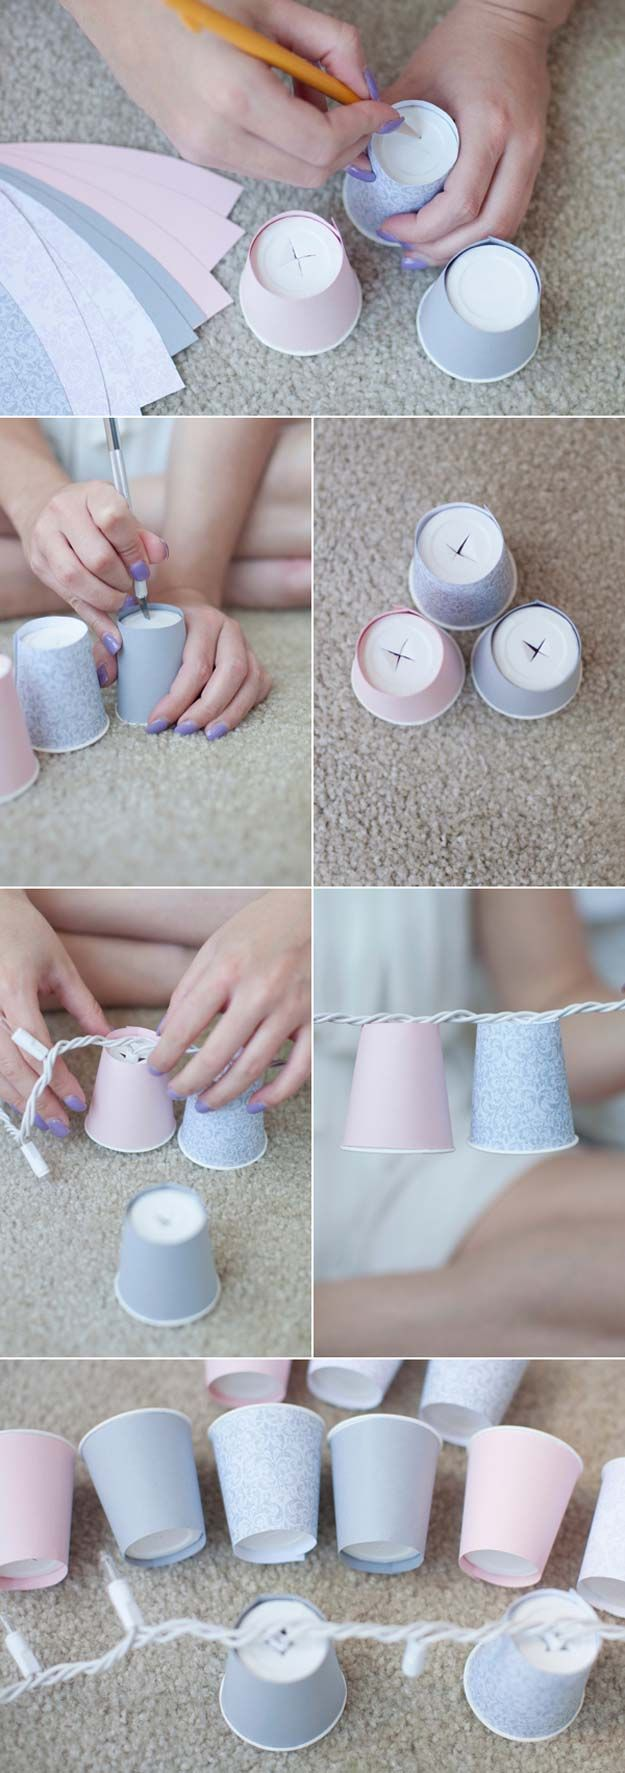 Top 25 ideas about Dorm Room Crafts on Pinterest  Diy  ~ 191949_Dorm Room Craft Ideas